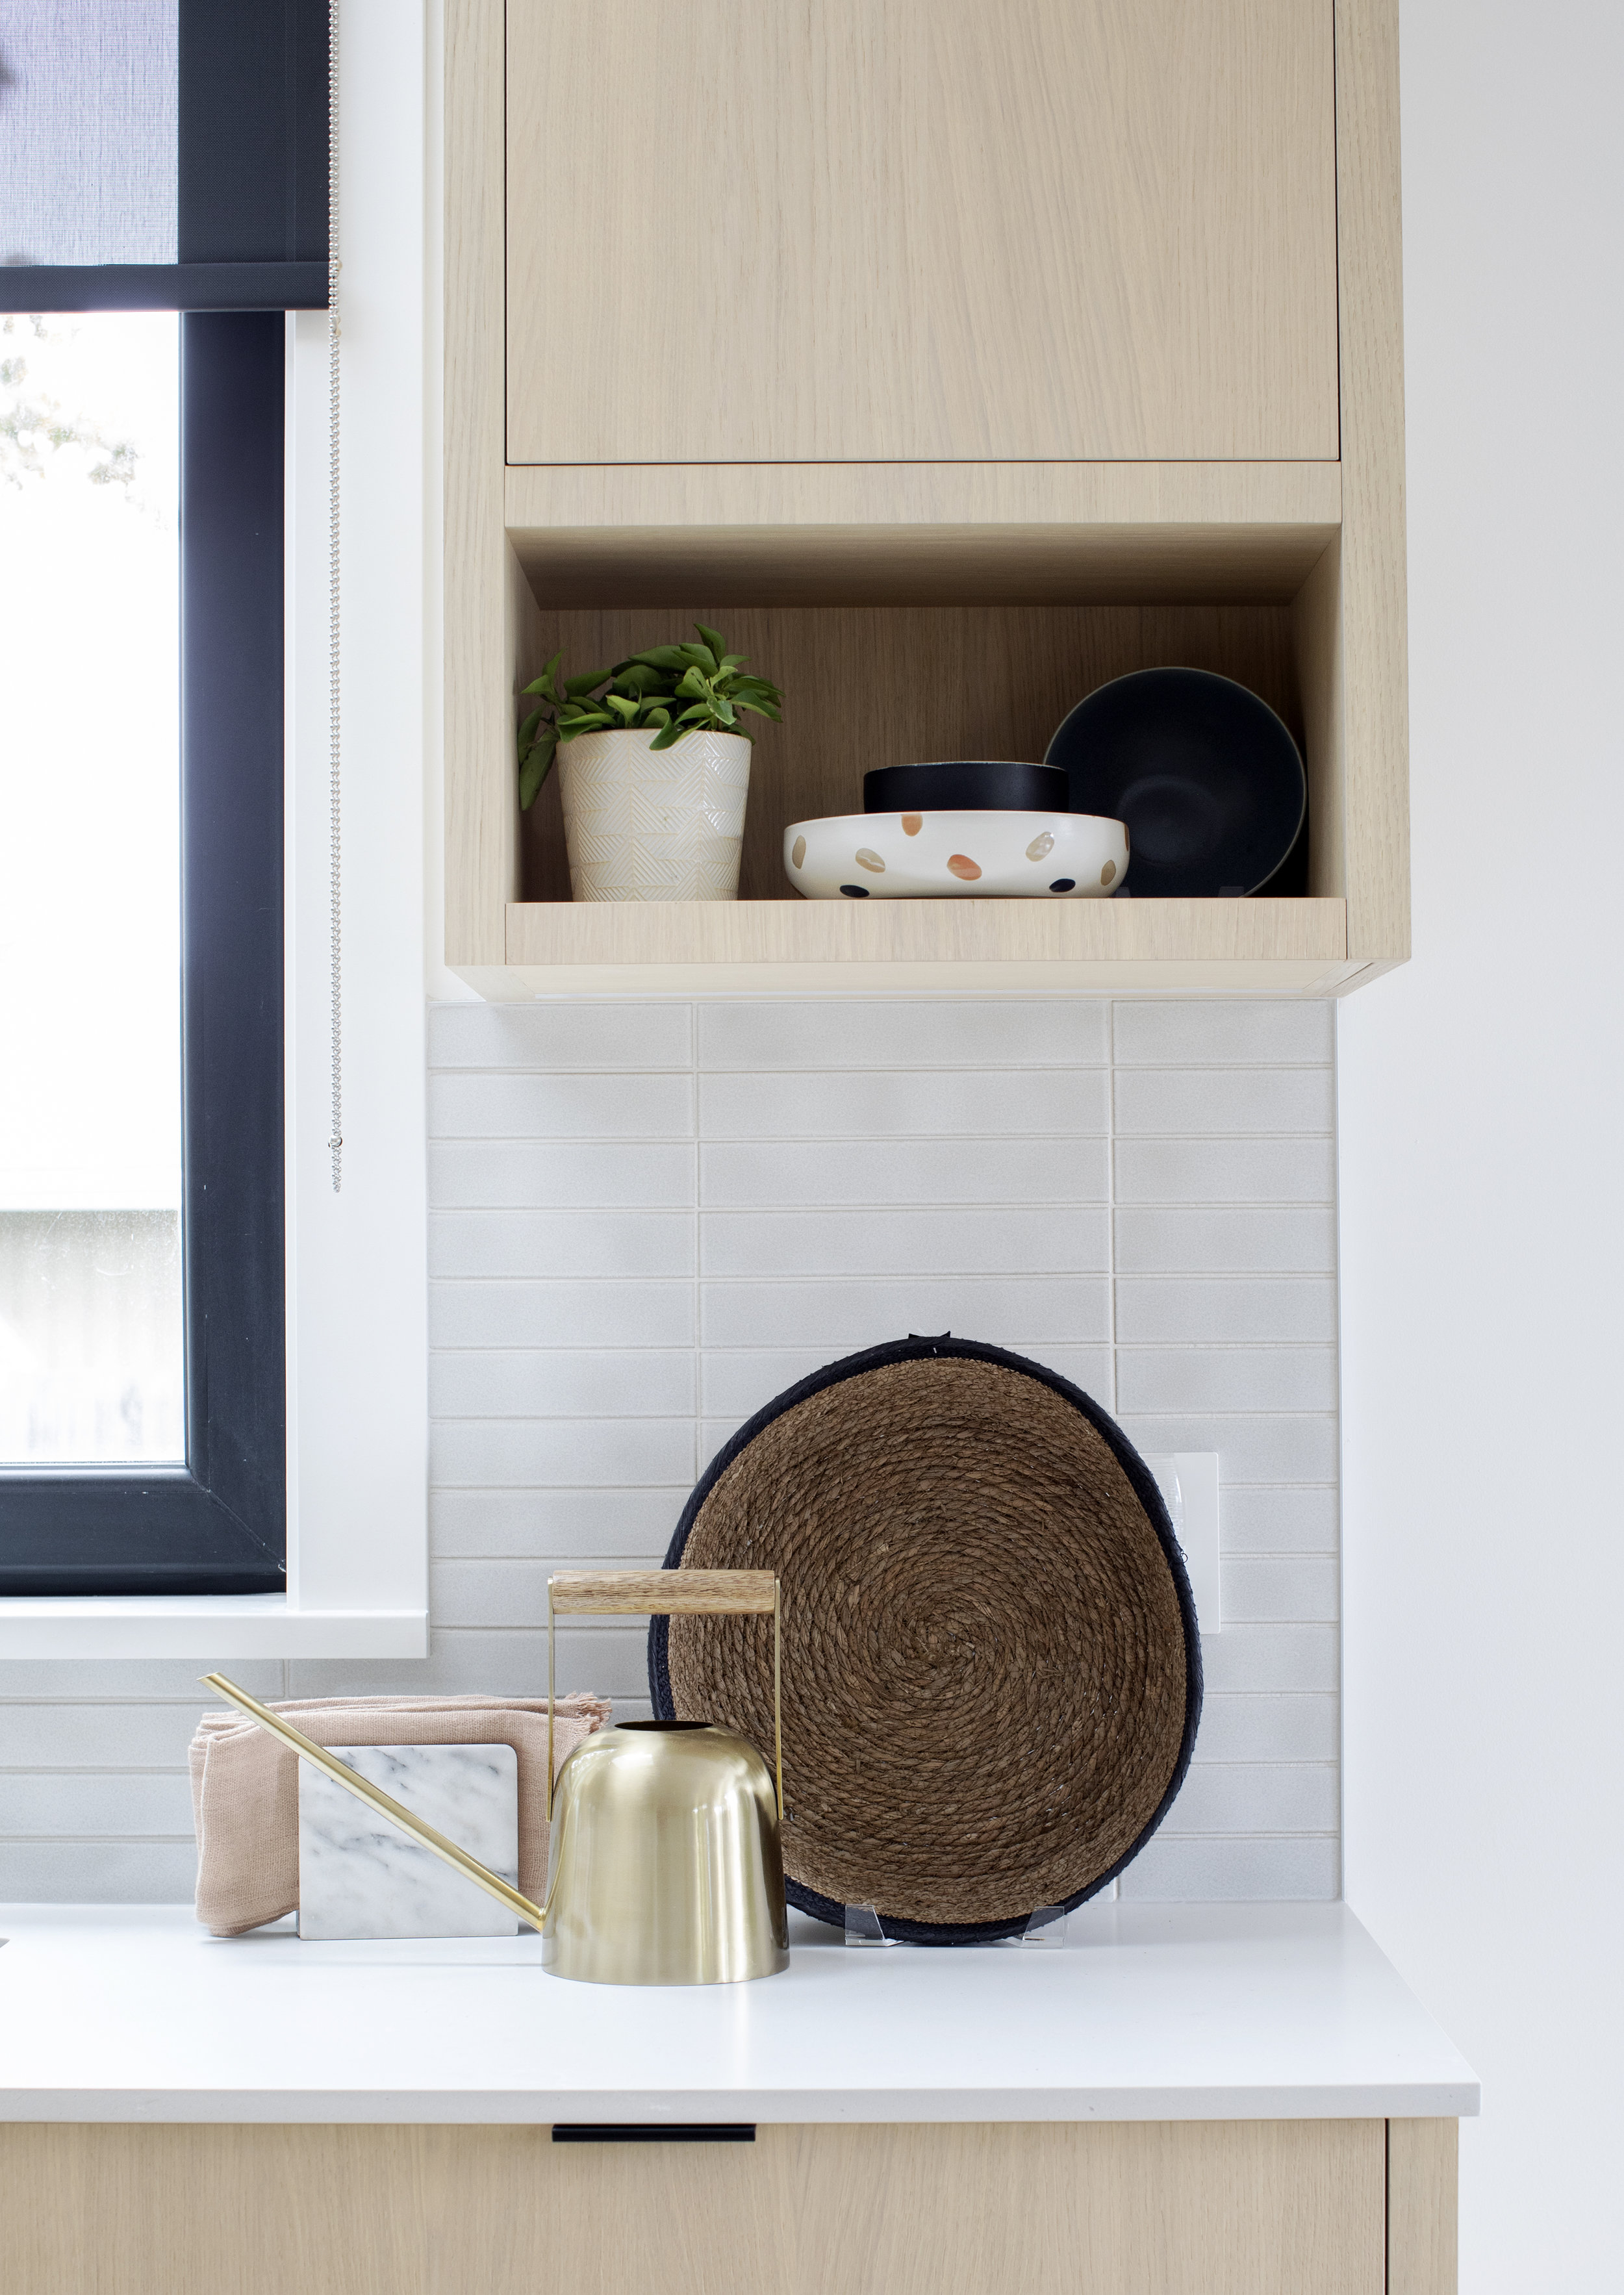 Decorative pieces give the kitchen in East 13th Street a homey touch